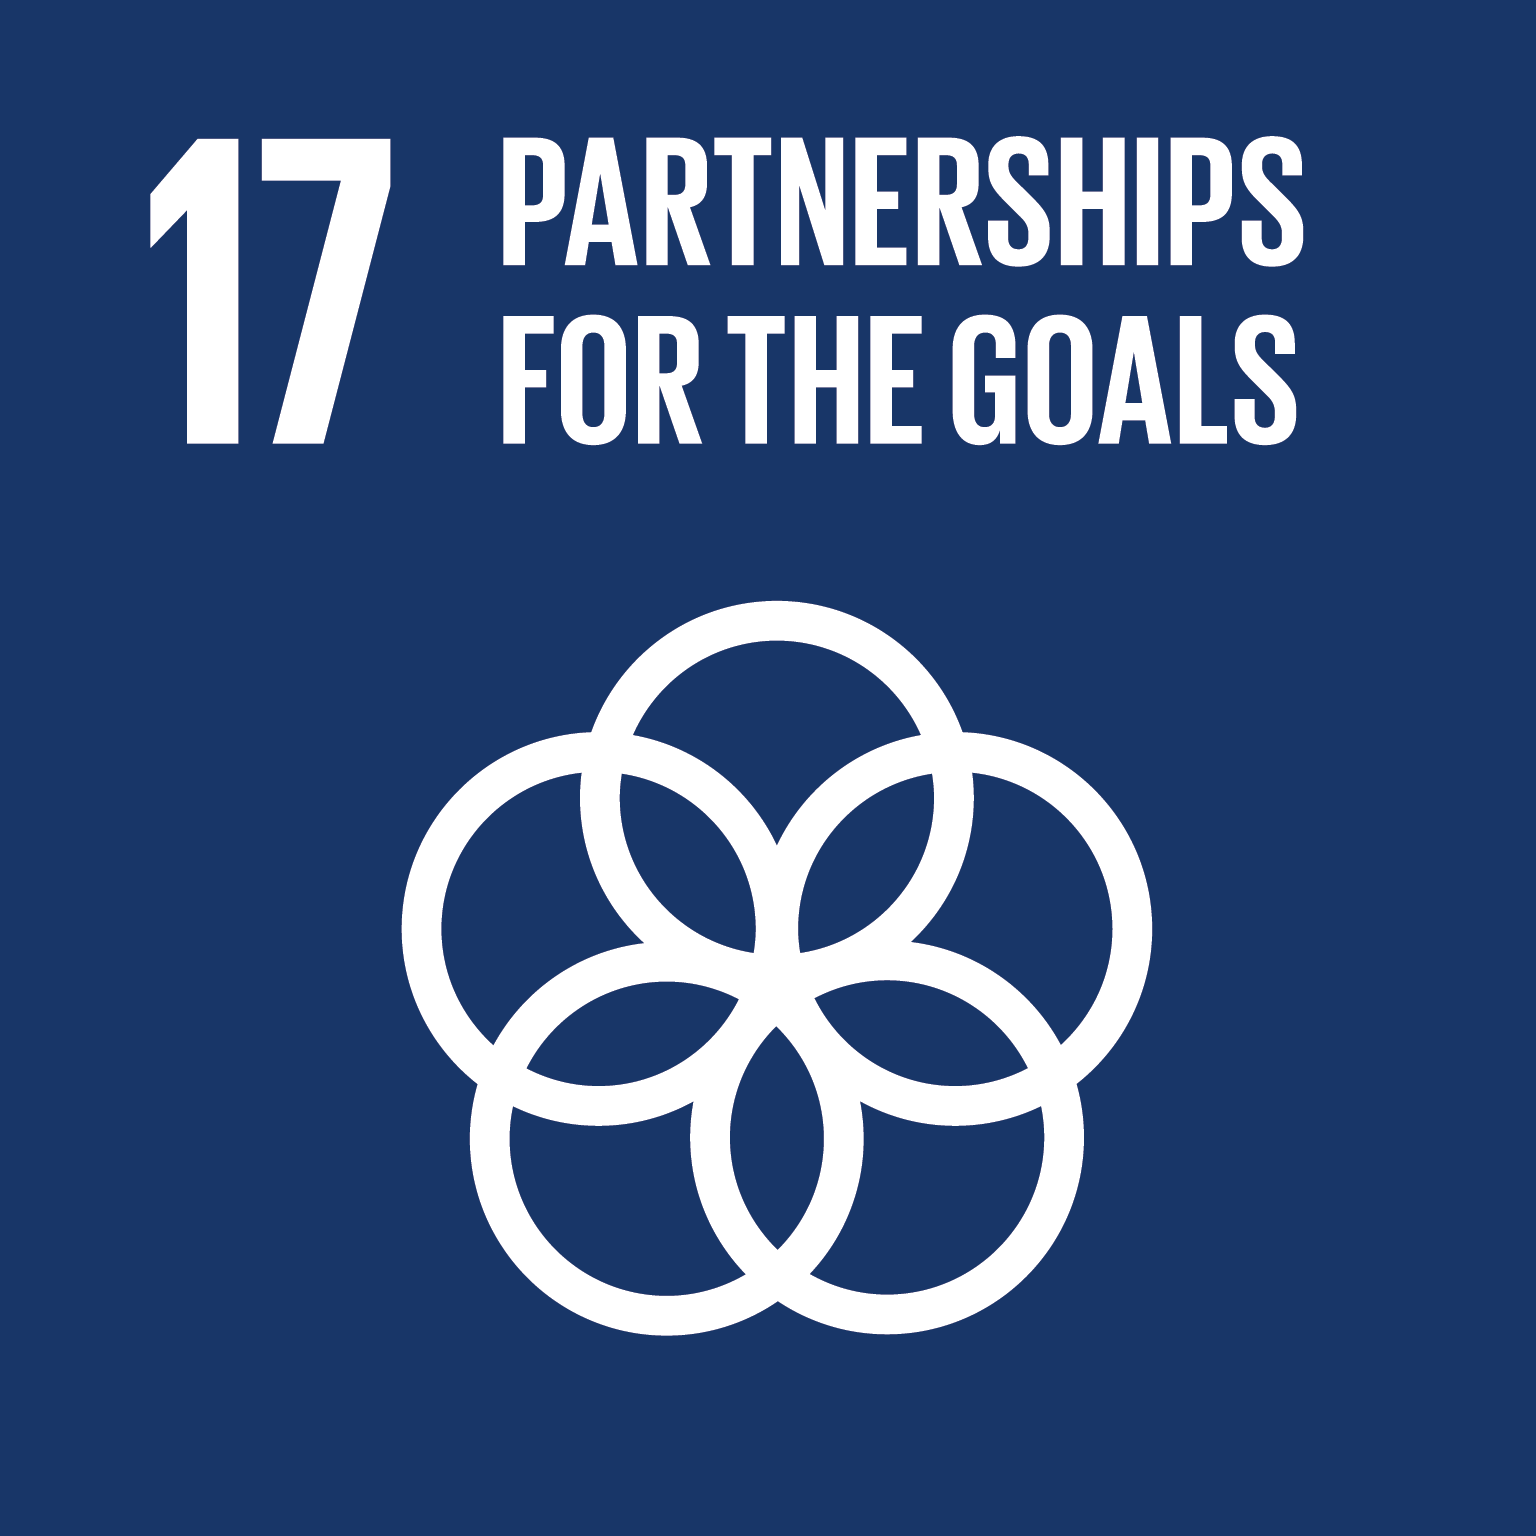 Partnership for the Goals